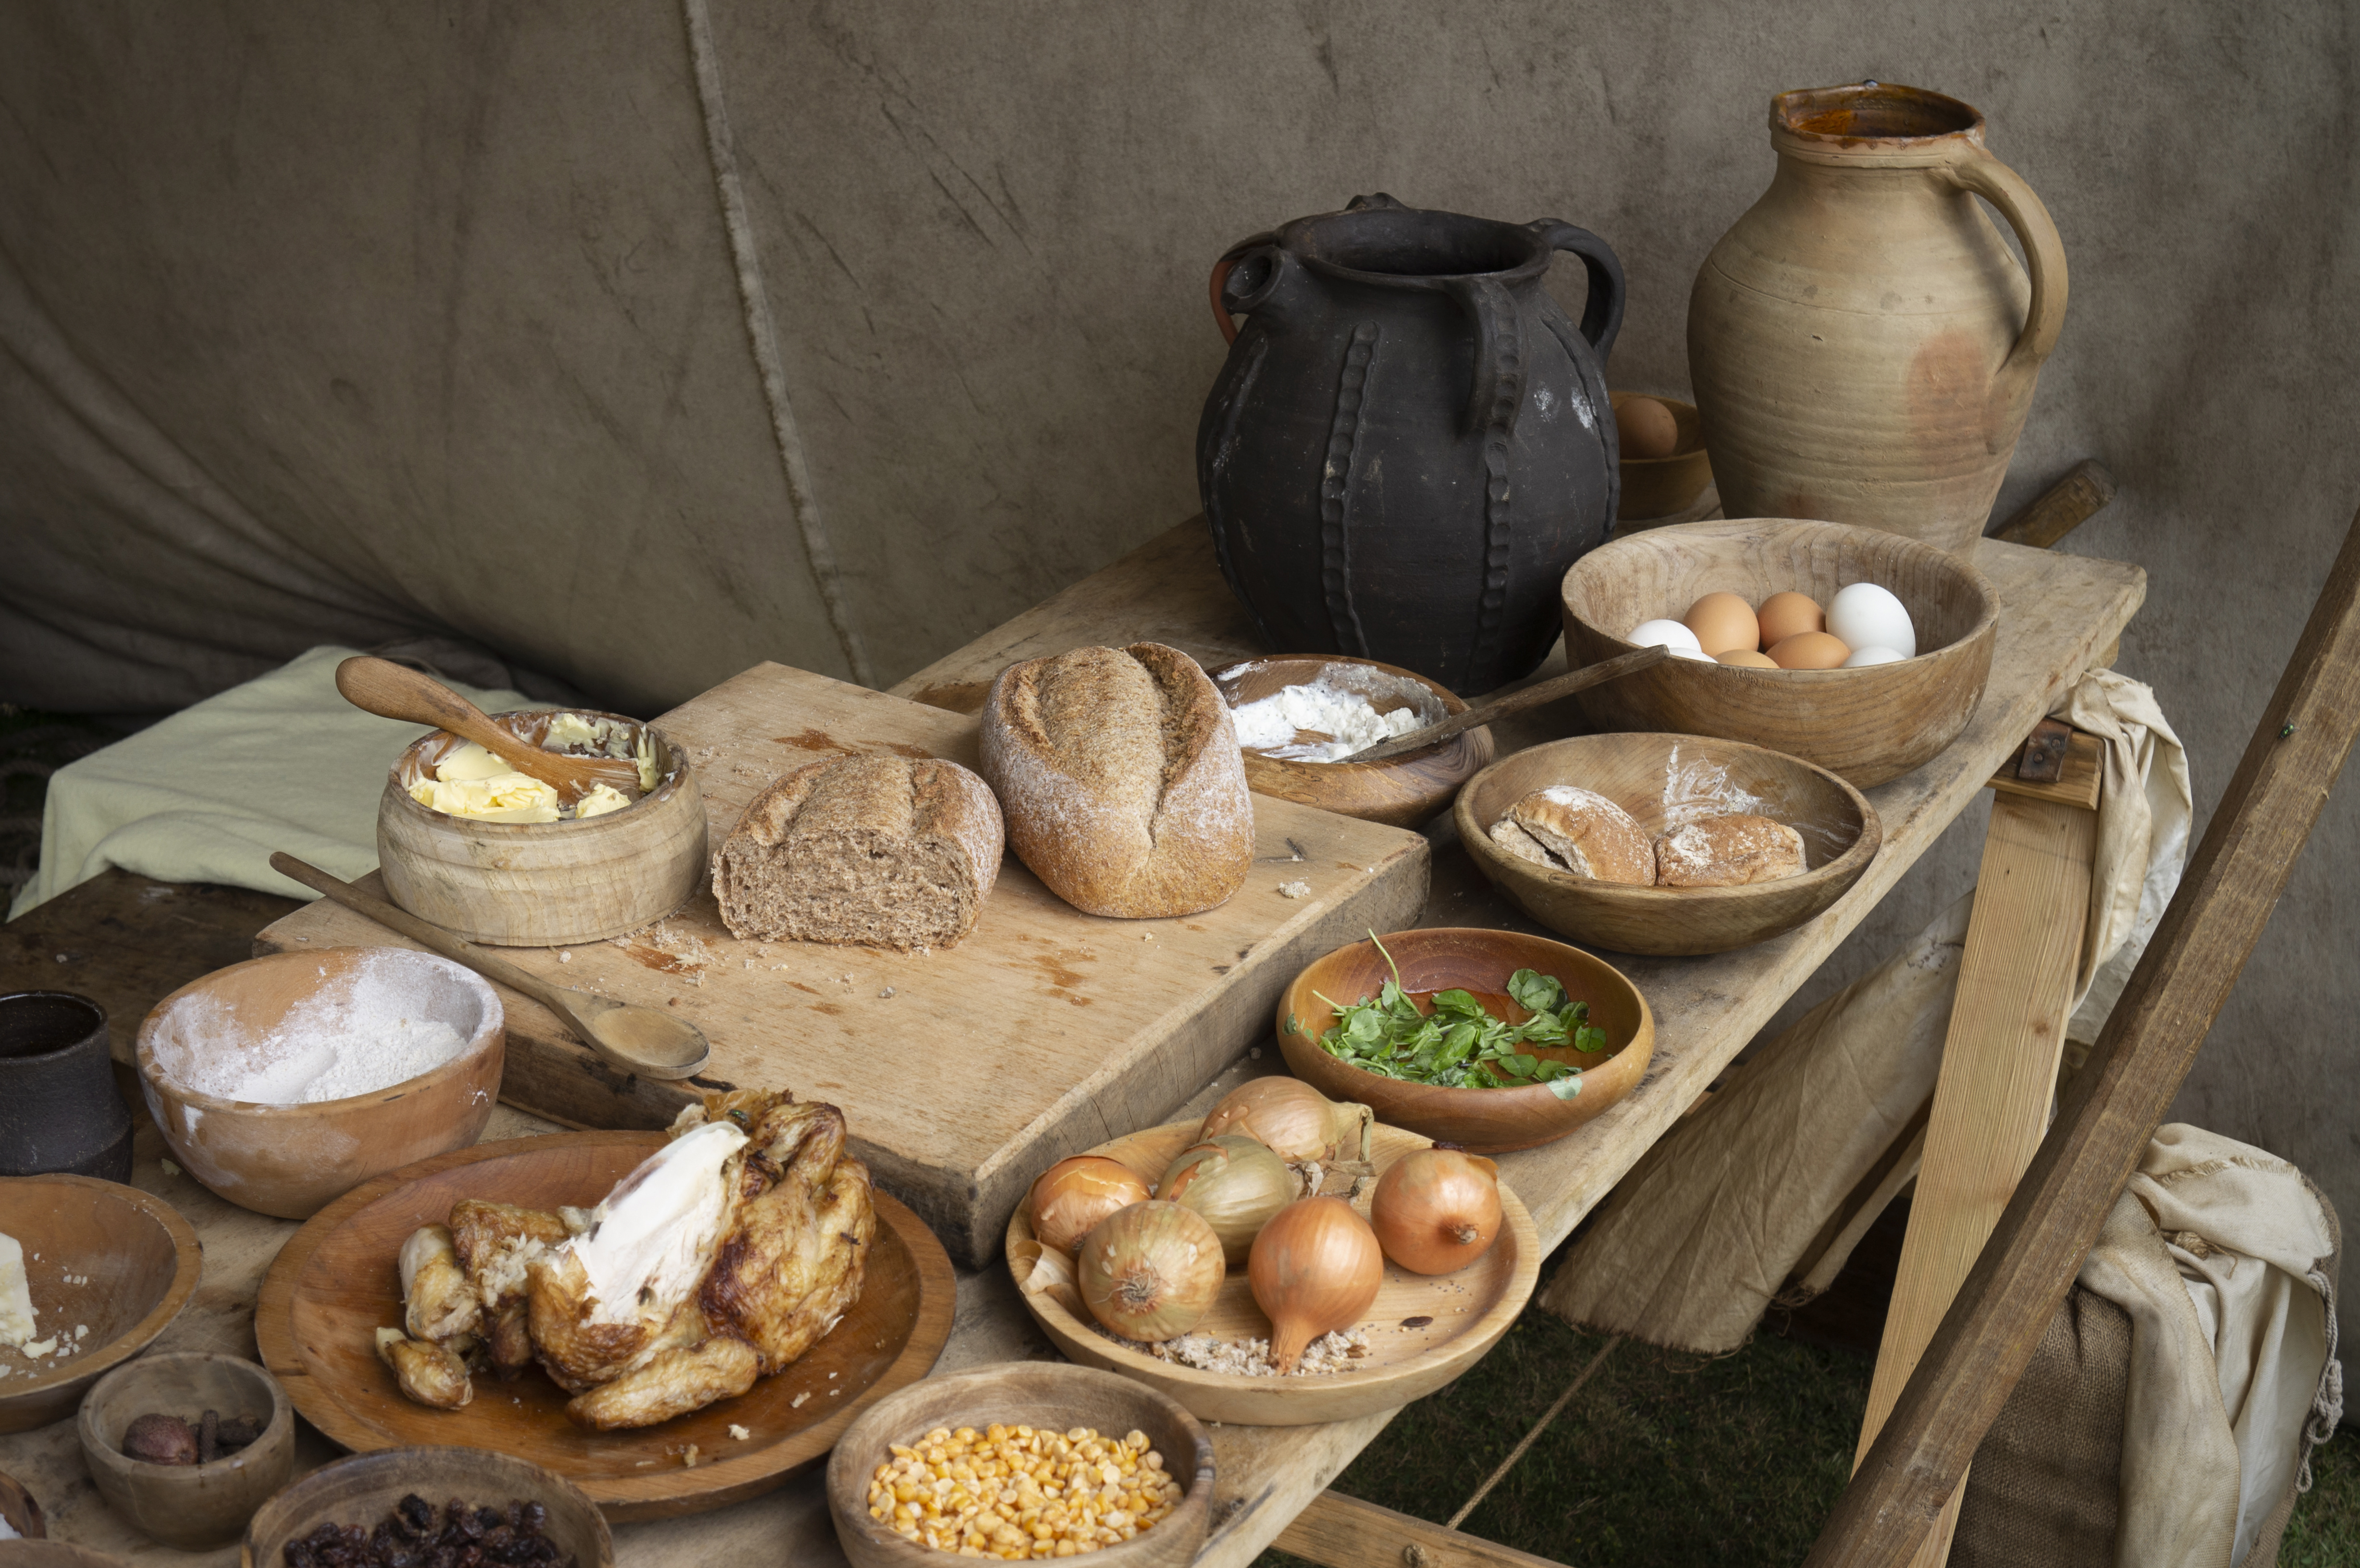 An early medieval feast.